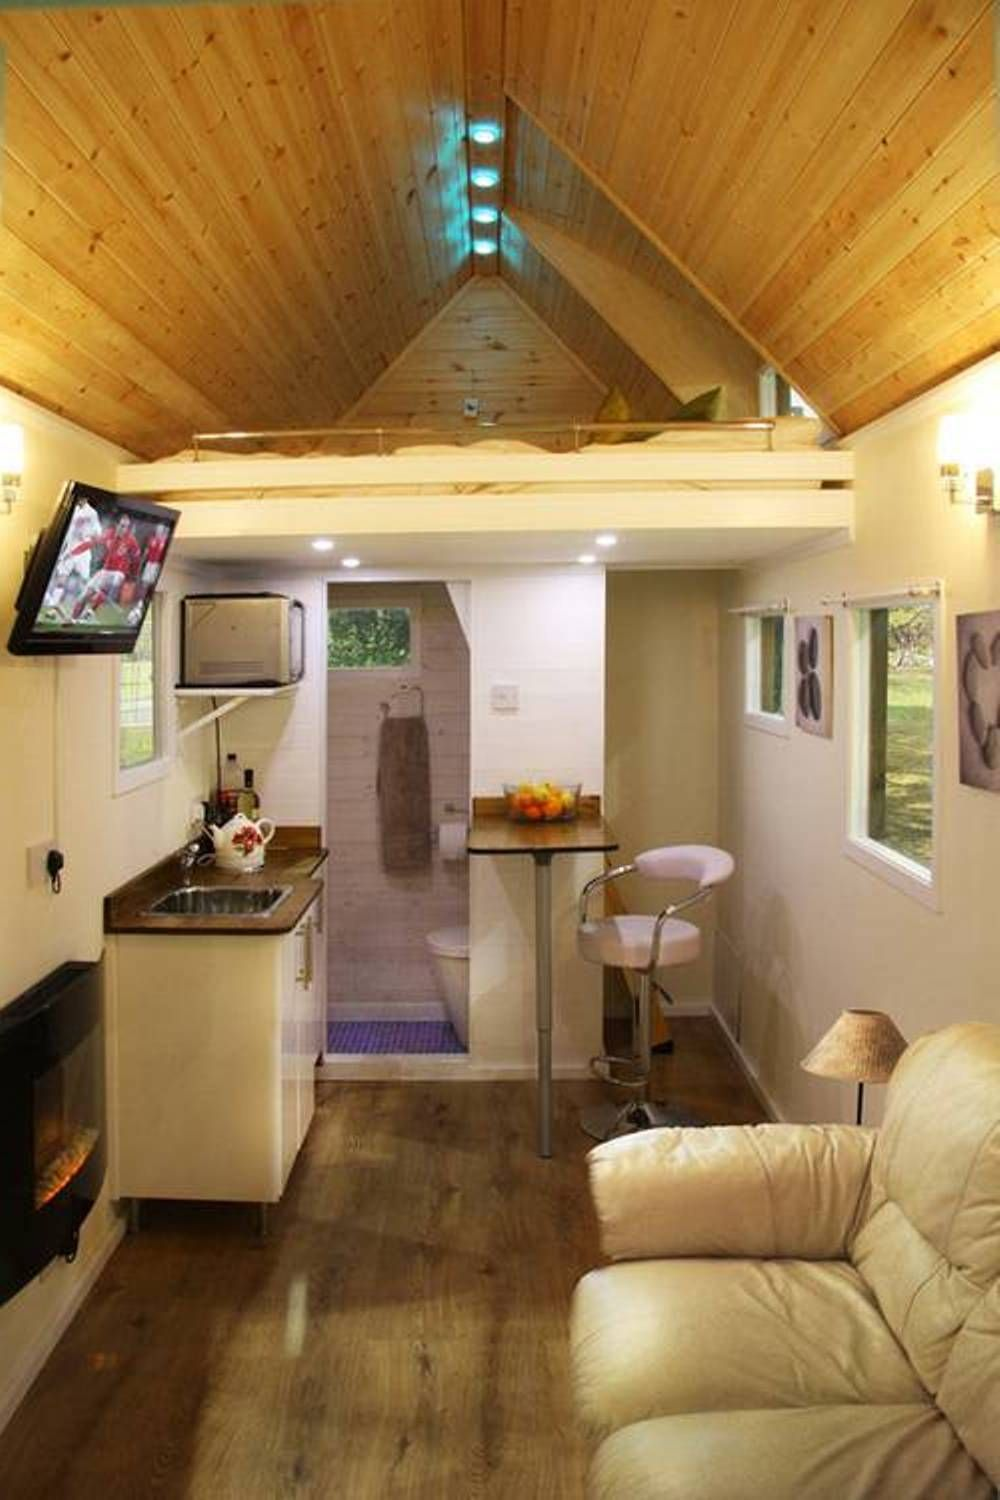 Tiny House Interior Plans simple interior design ideas for small housesimple interior design